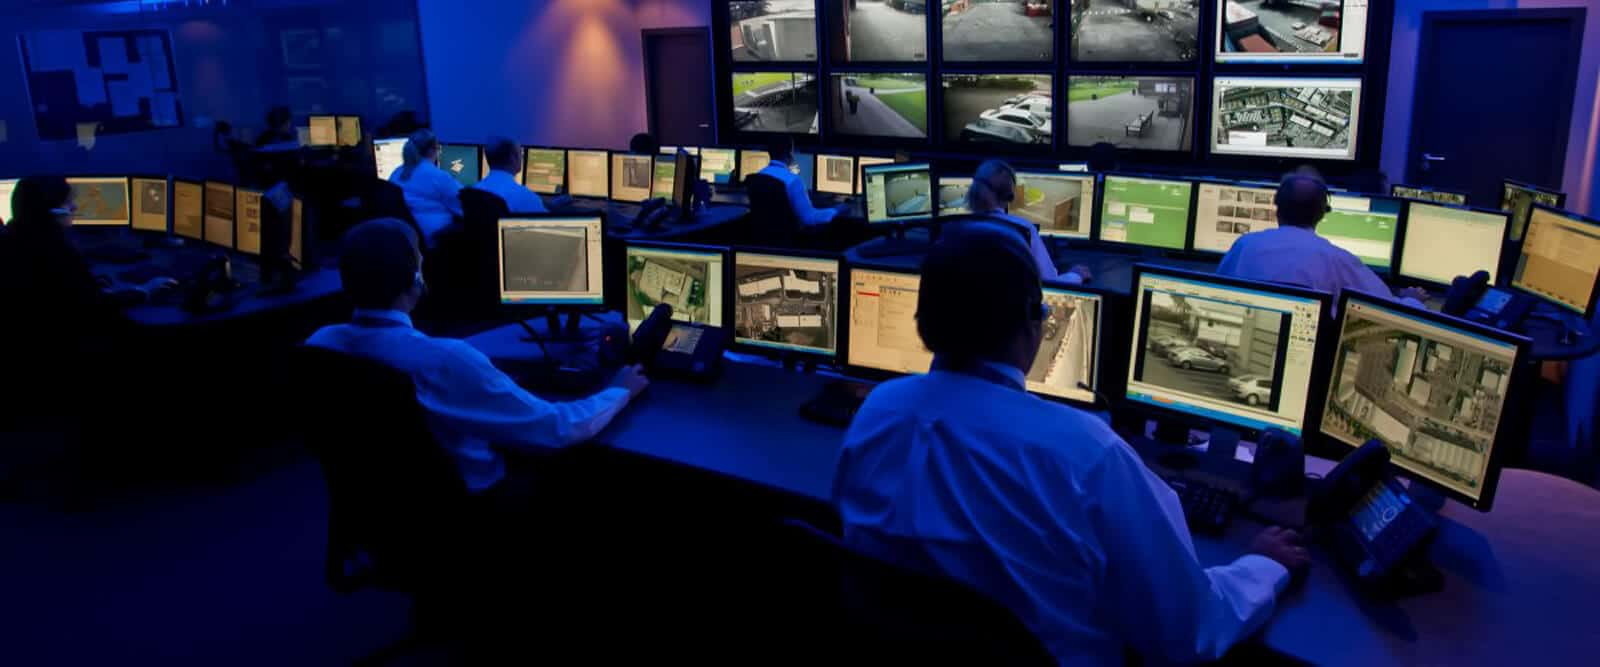 24-hour-alarm-and-cctv-monitoring business security systems